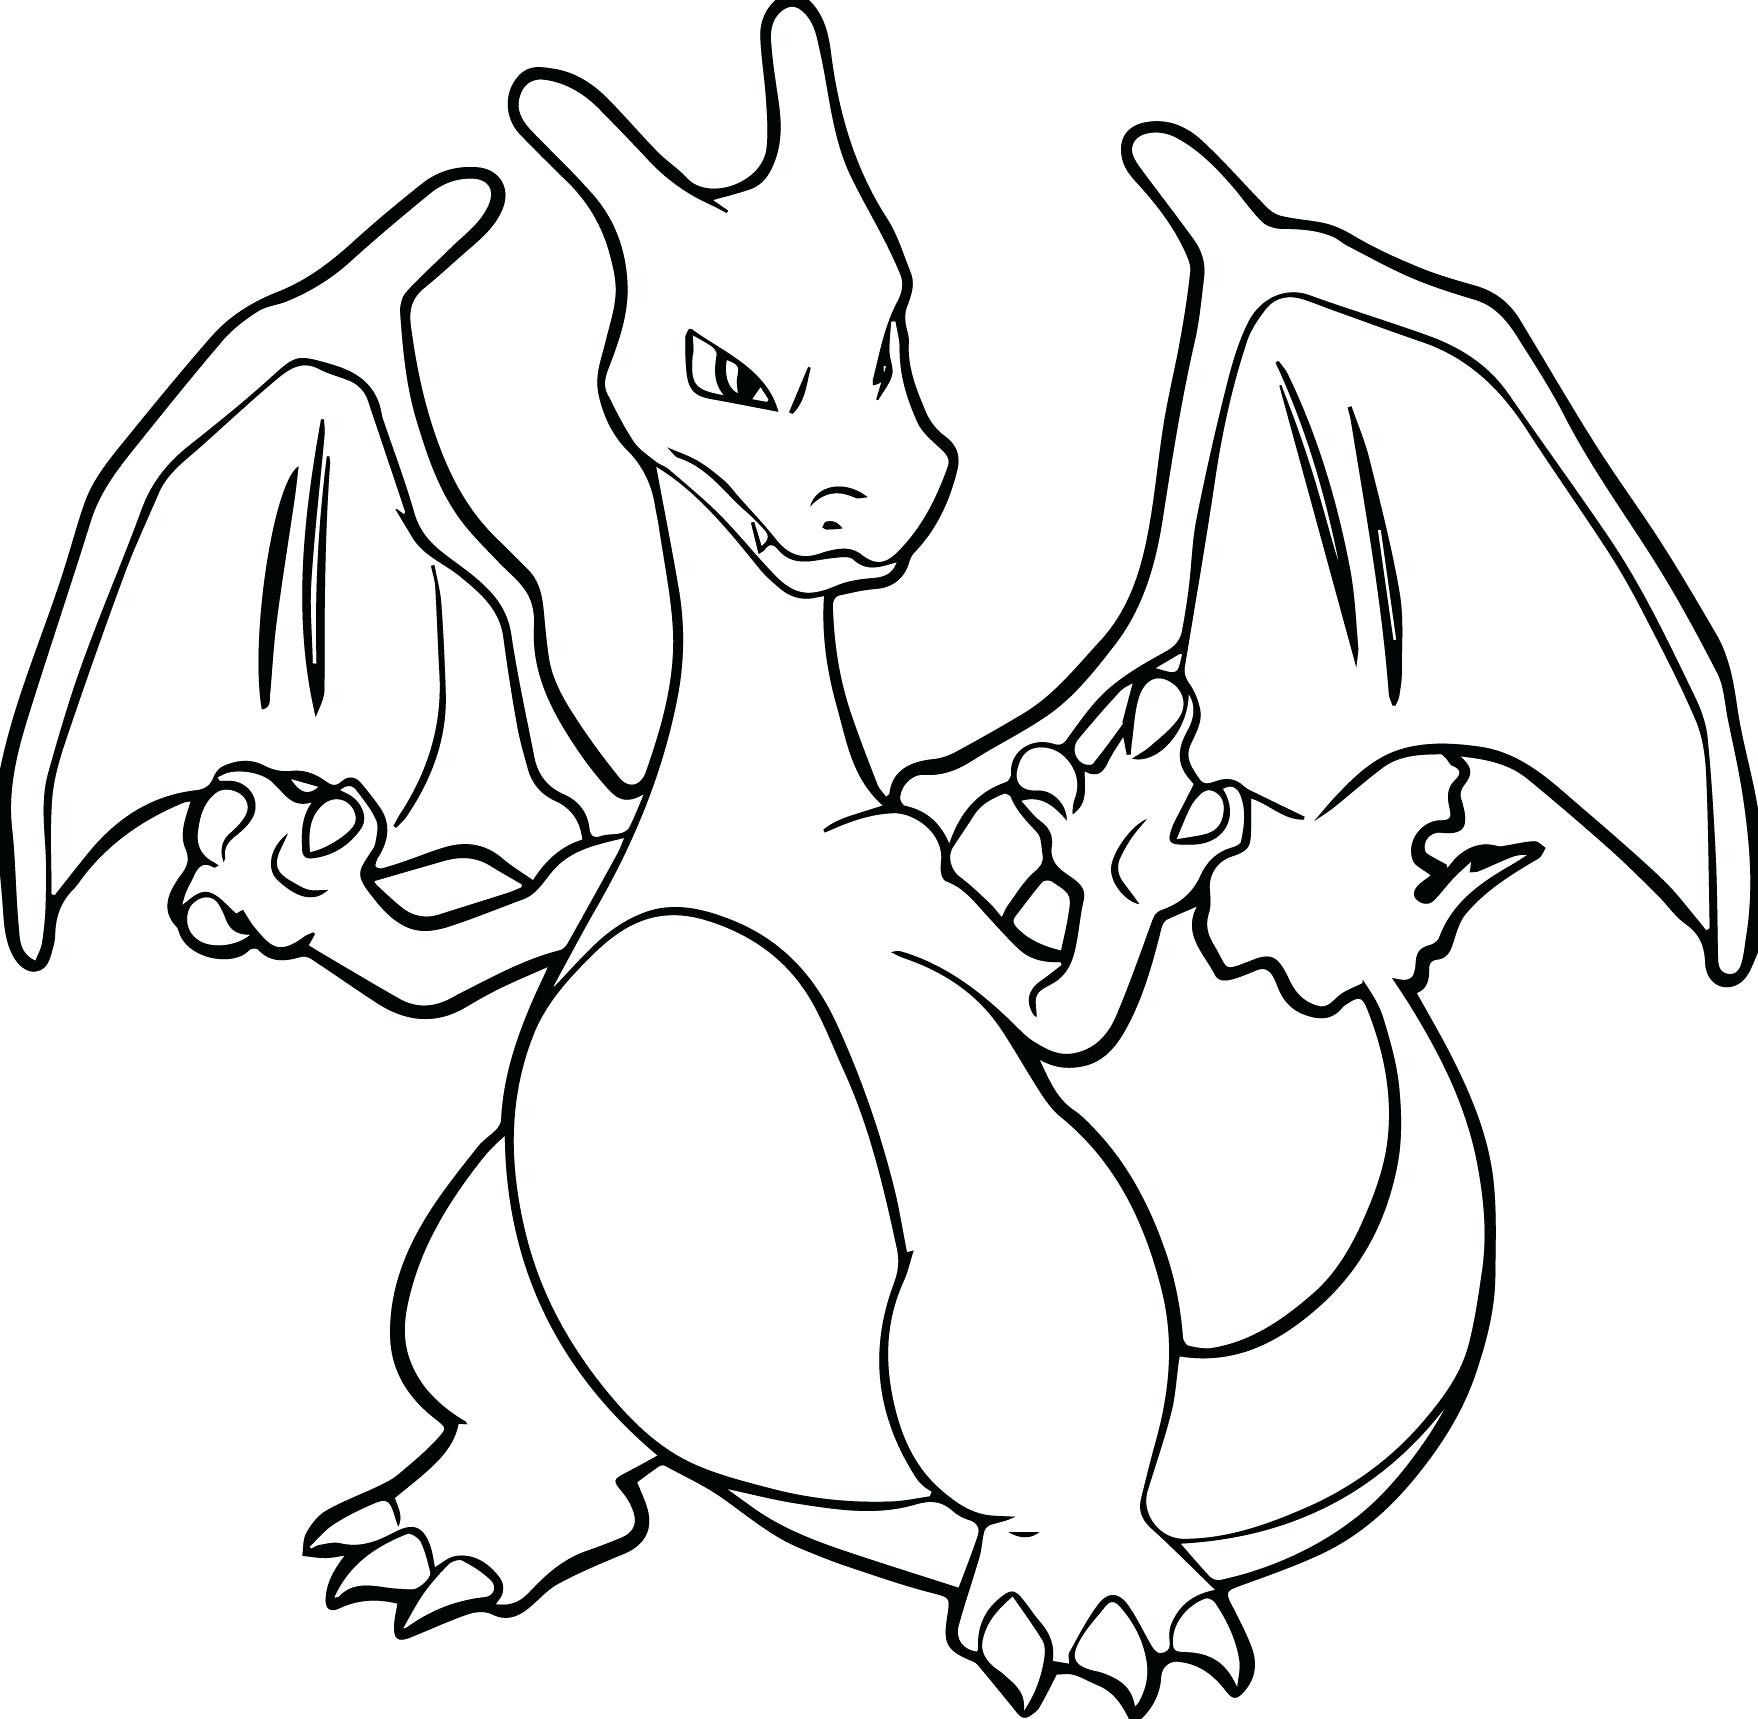 Charizard Coloring Pages Pokemon Coloring Pages Pokemon